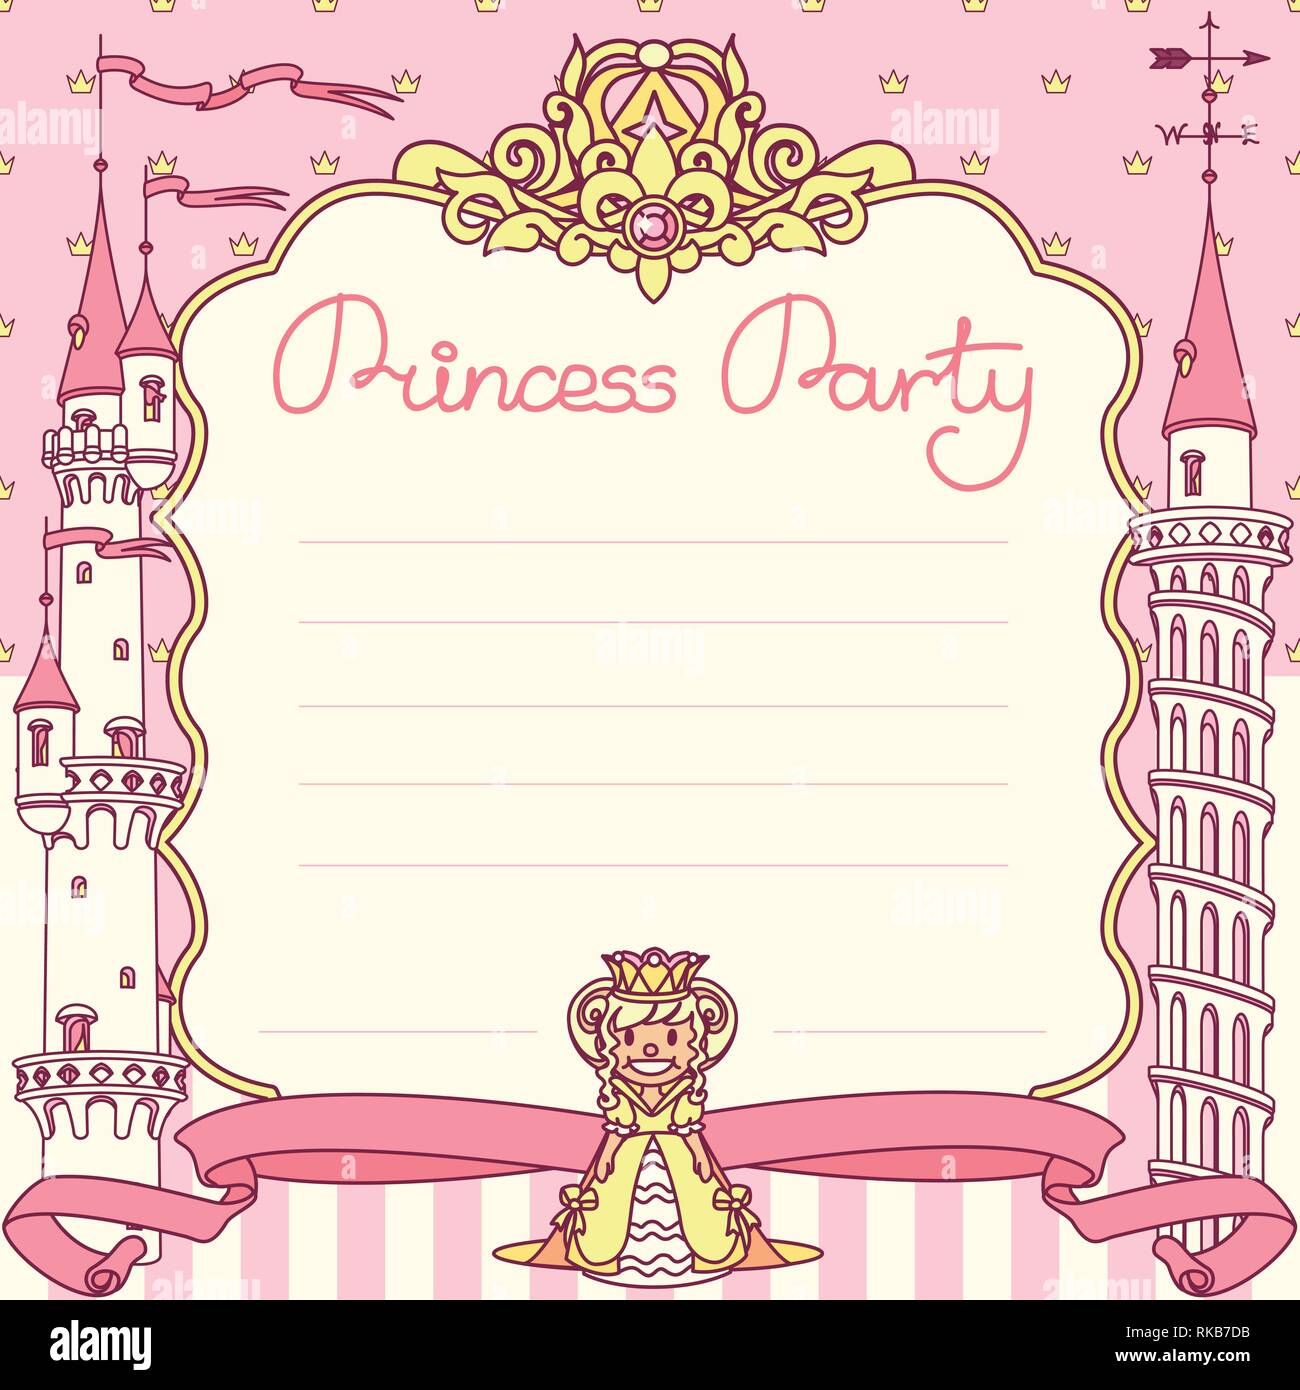 https www alamy com vector princess party invitation template concept image235660583 html